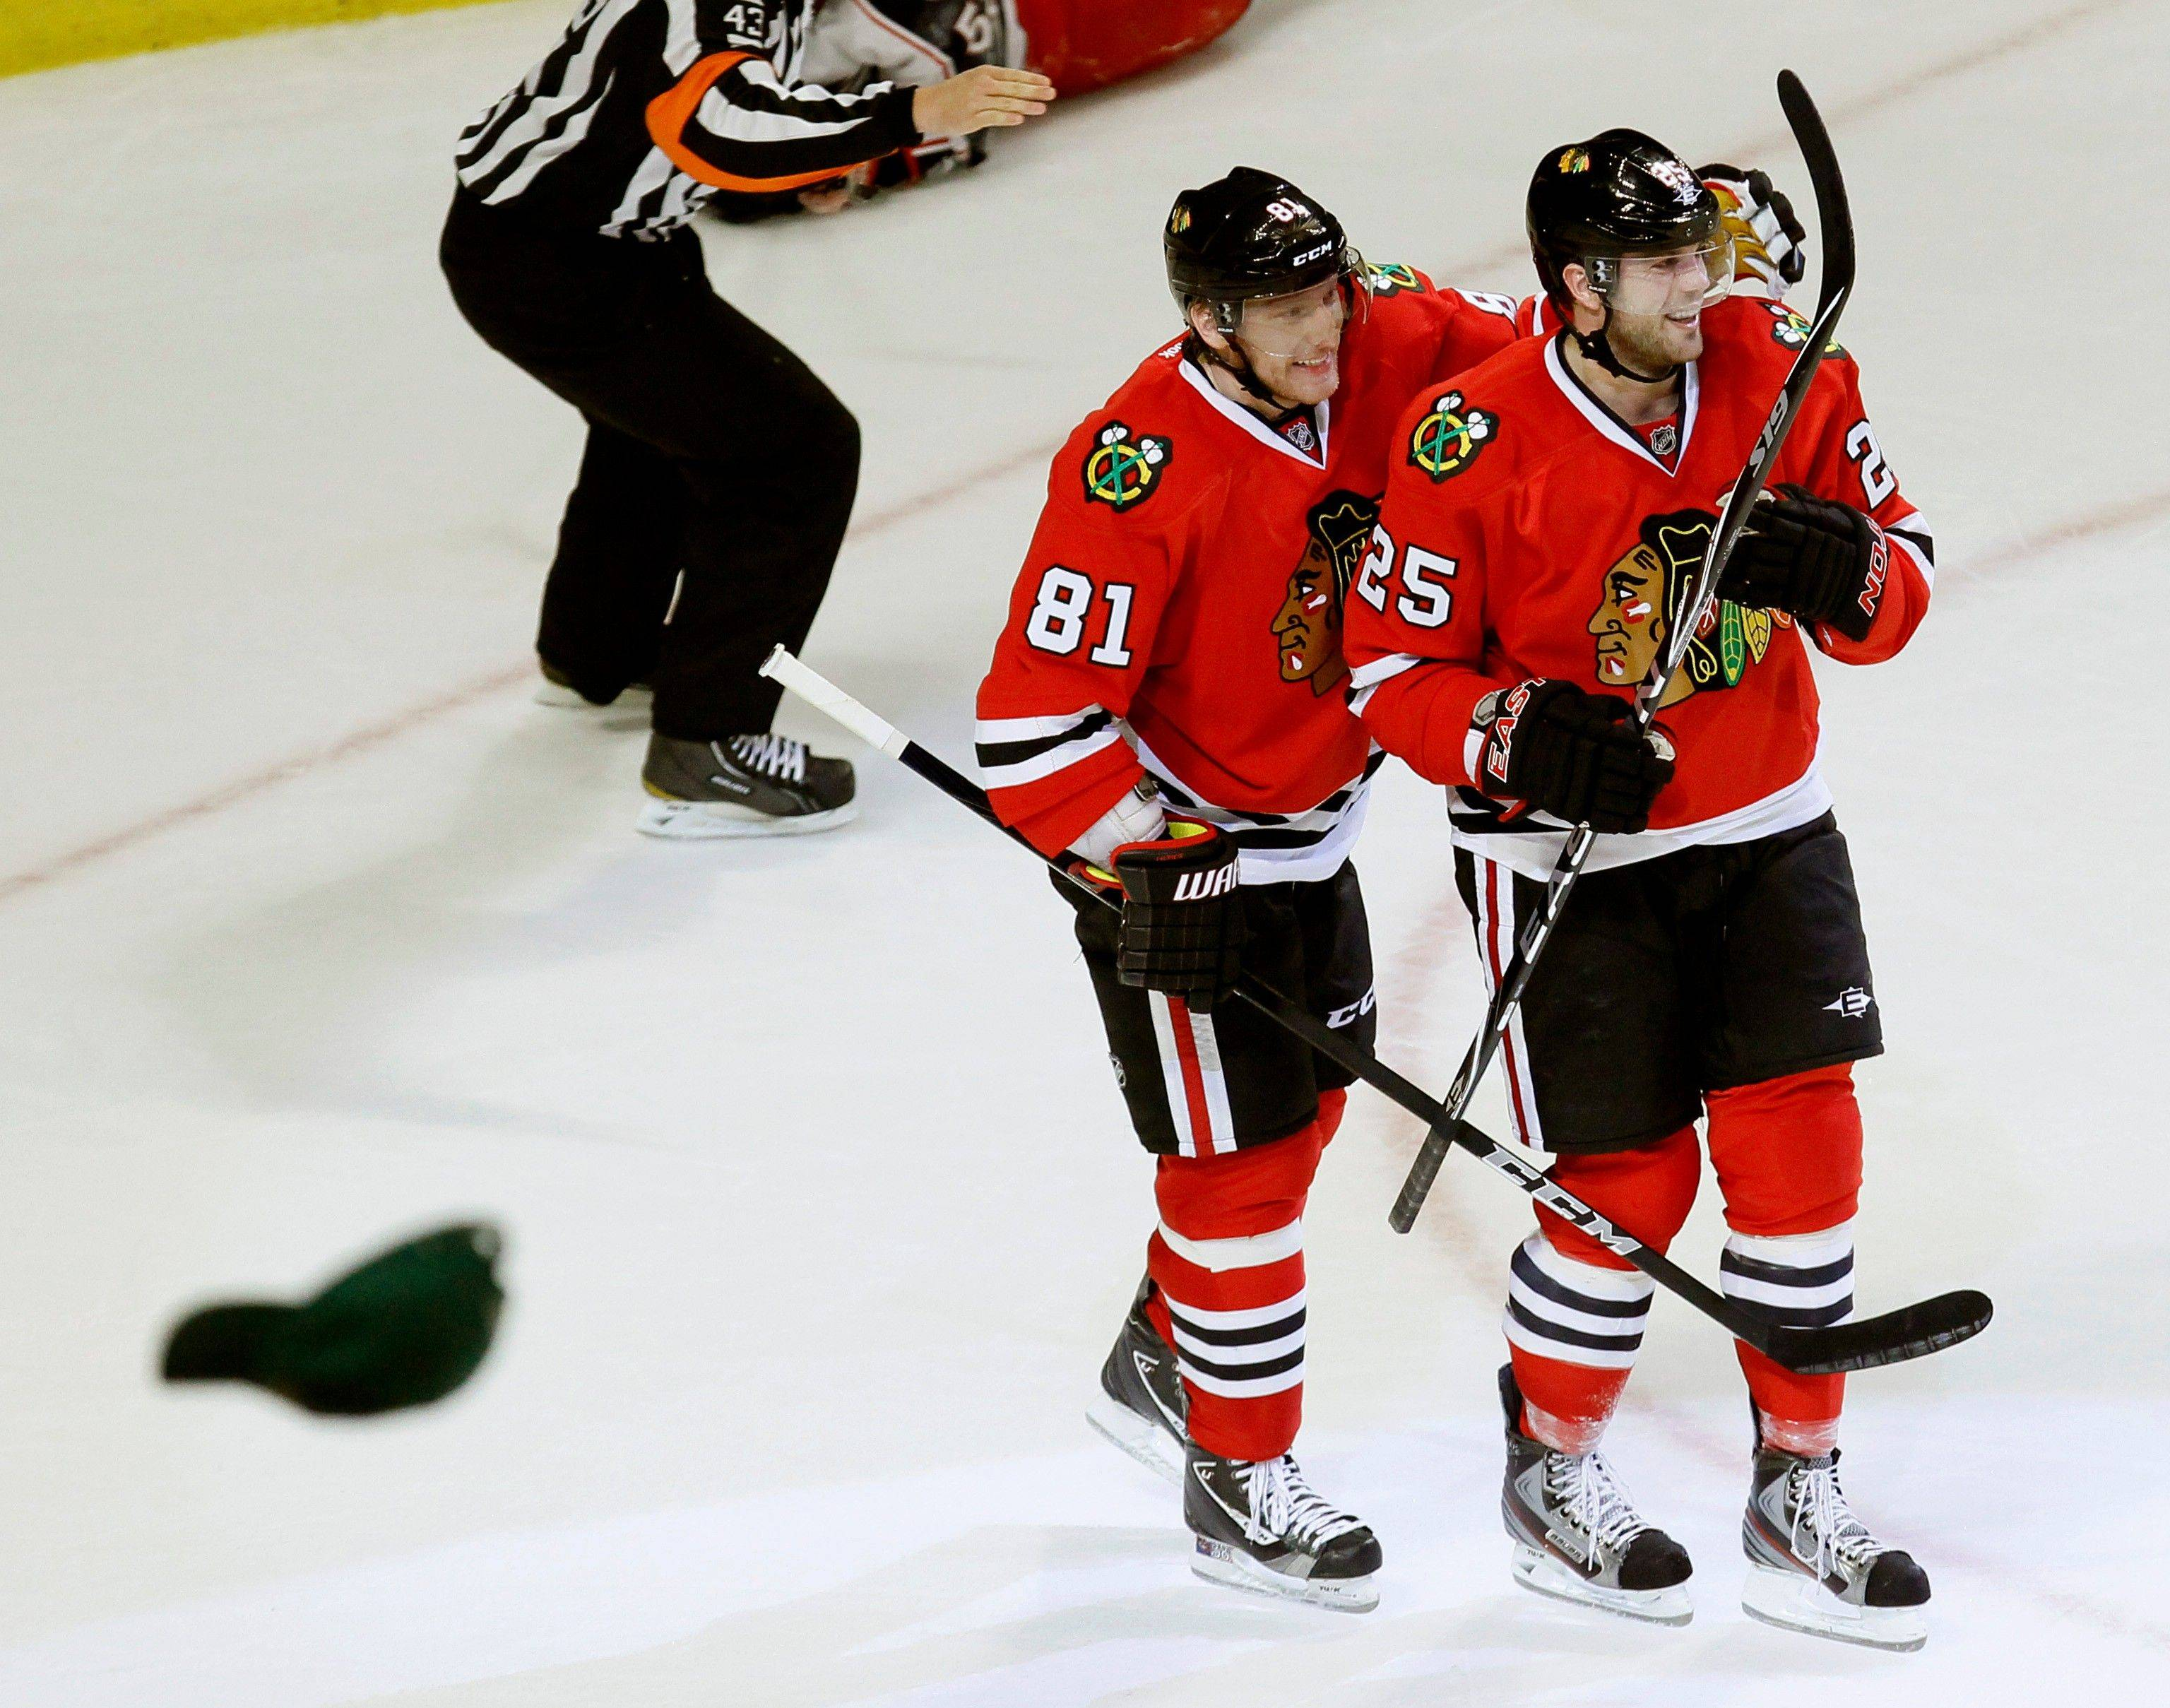 Blackhawks left wing Viktor Stalberg (25) celebrates his hat trick with teammate Marian Hossa, during the third period of an NHL hockey game against the Columbus Blue Jackets, Tuesday, Jan. 10, 2012, in Chicago. The Blackhawks won 5-2.